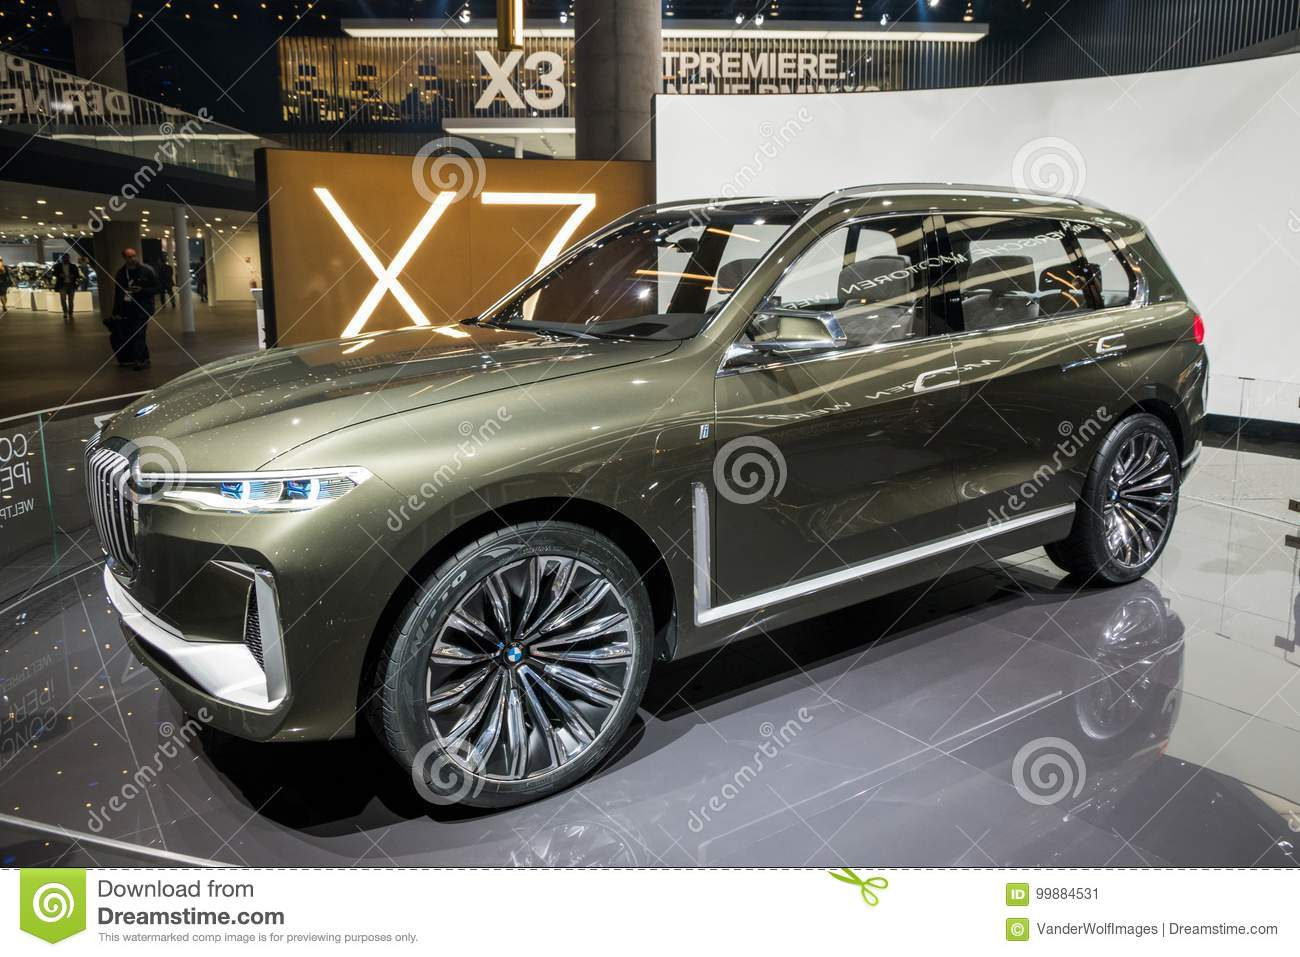 Bmw Concept X7 Iperformance Suv Car Editorial Photo Image Of